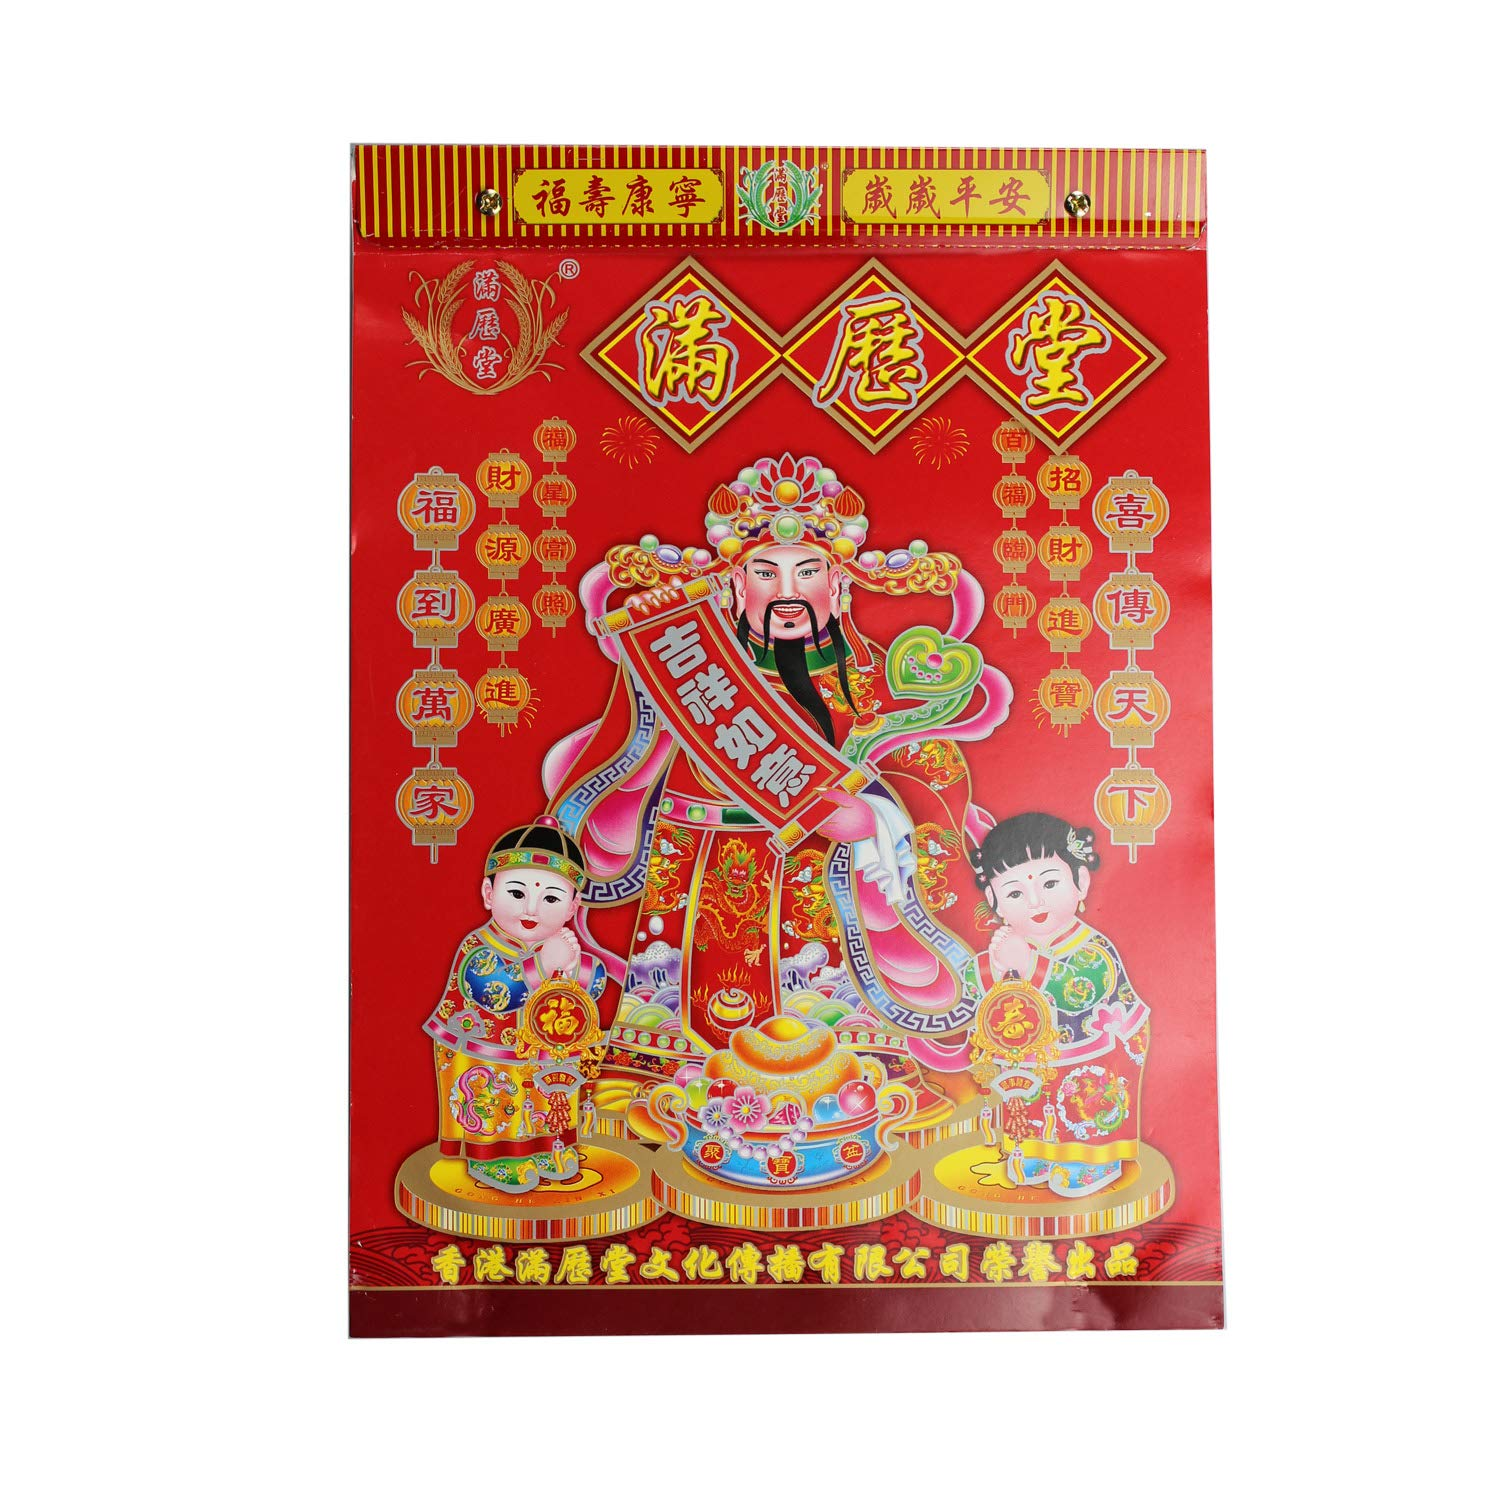 Barossa Design Chinese Daily Calendar 2019-16K (10x7.5 inches), Individual Page a Day - for 2019 Year of The Boar